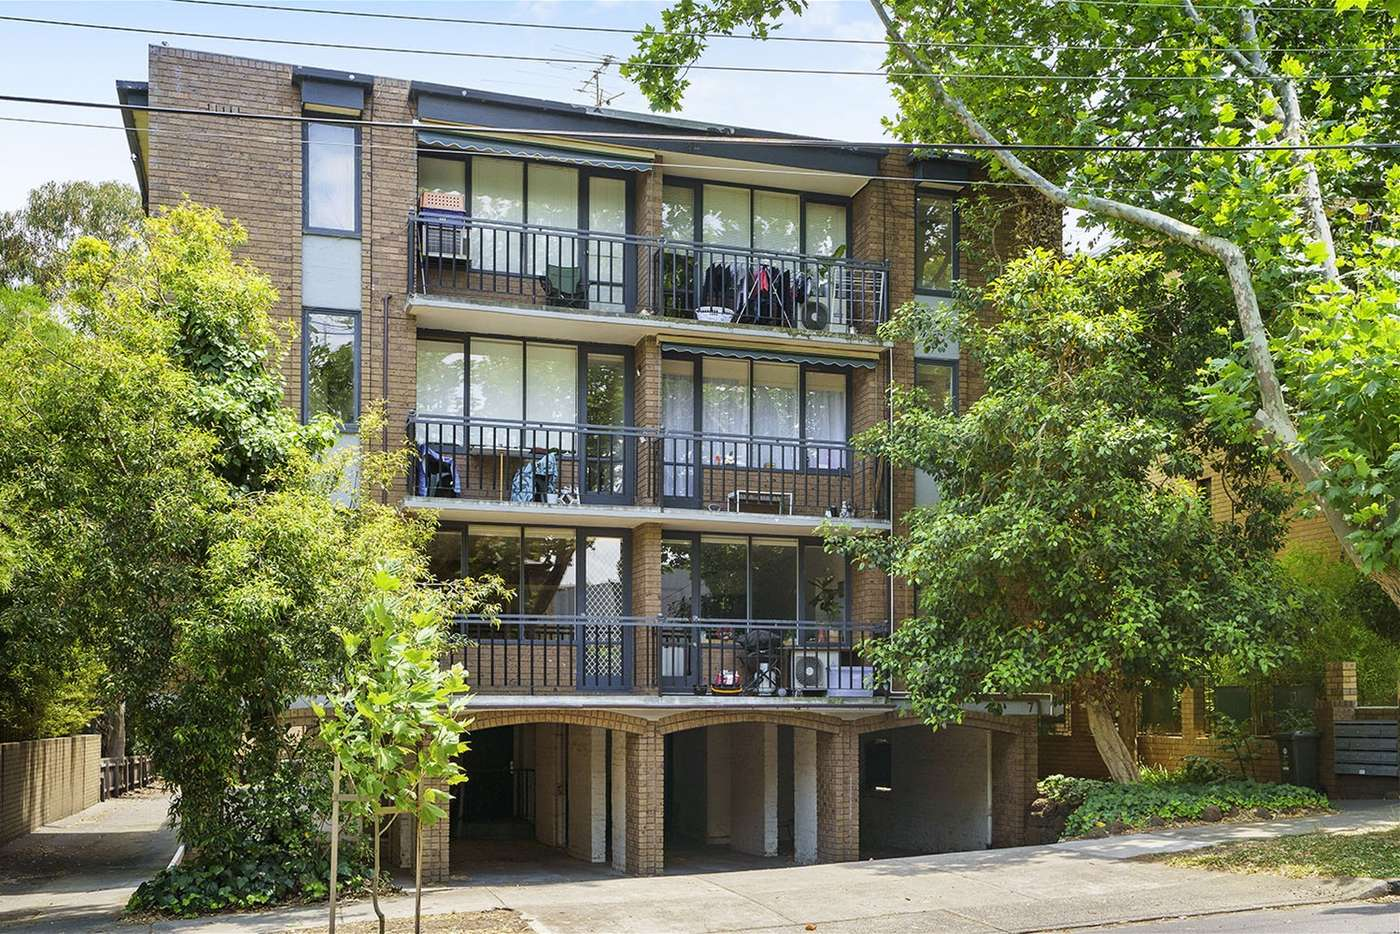 Main view of Homely apartment listing, 6/7 Rockley Road, South Yarra VIC 3141